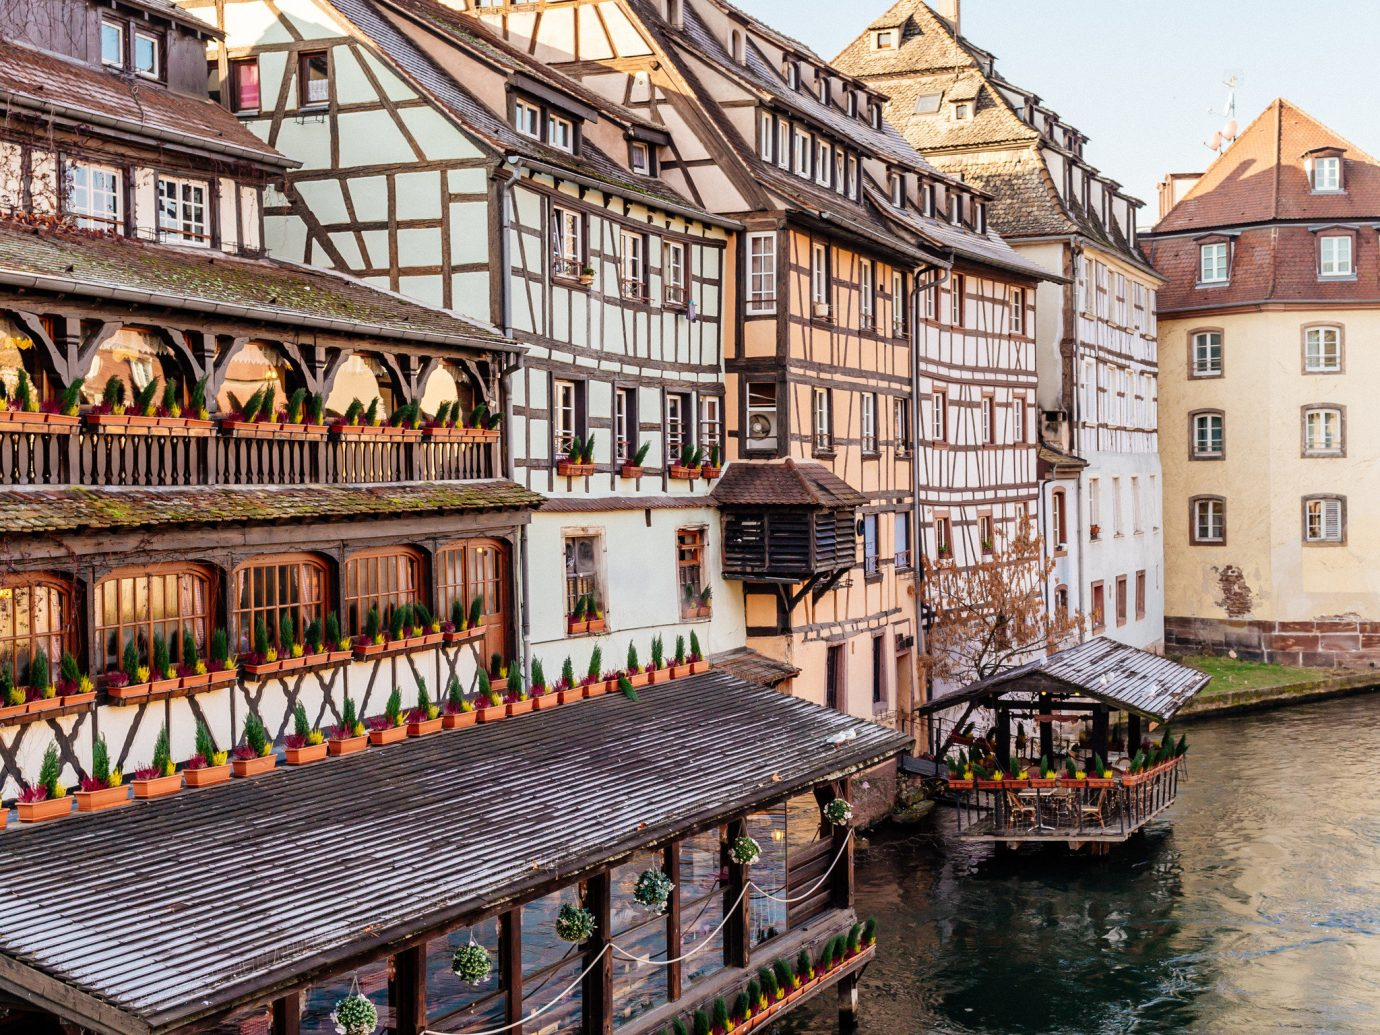 Cruise Travel Luxury Travel outdoor water waterway water transportation reflection Canal Town River sky City channel building house Harbor evening facade